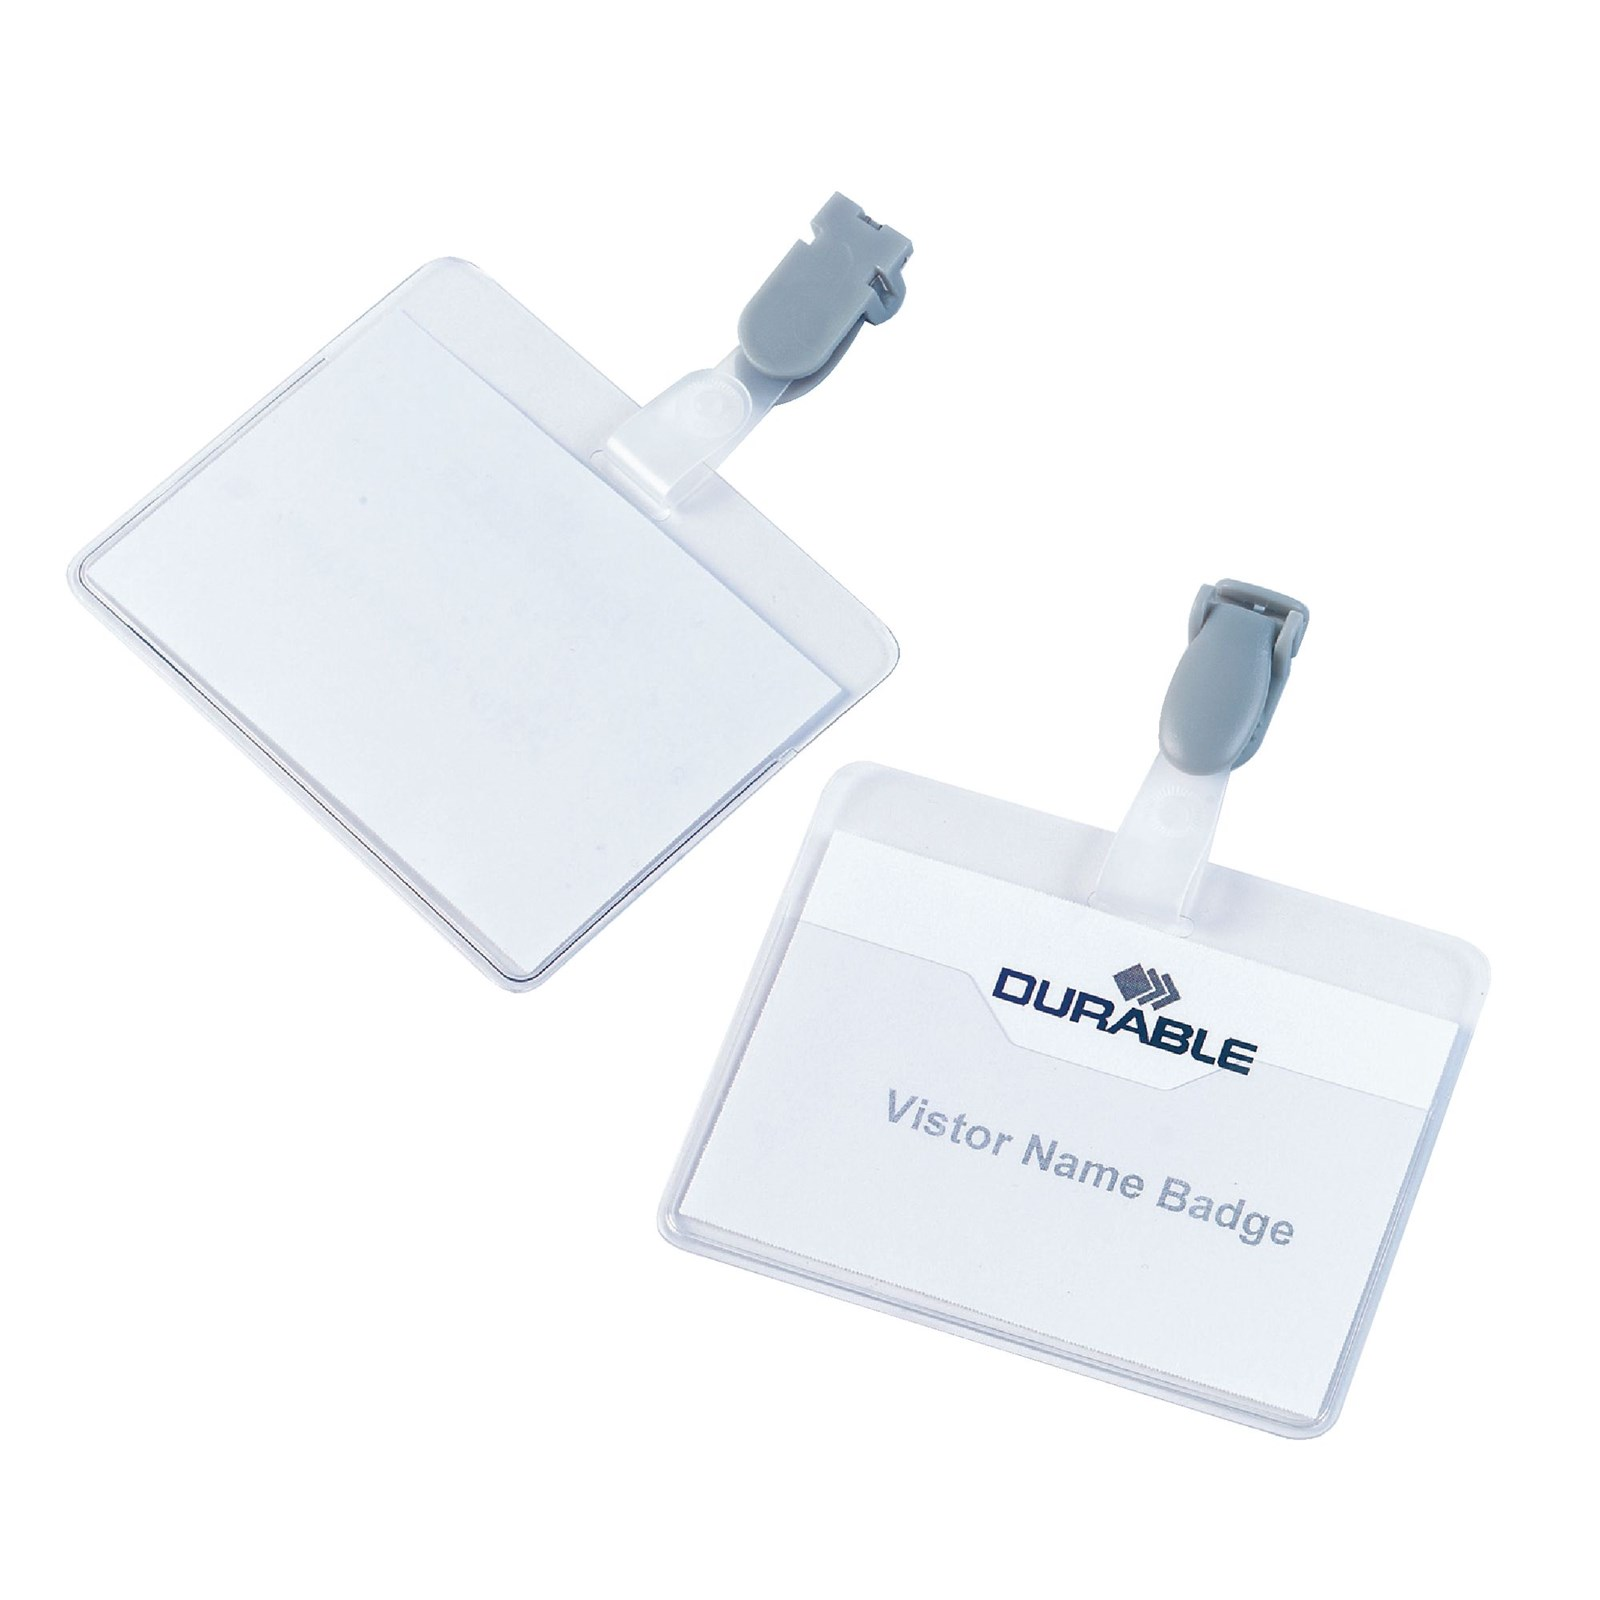 Durable Visitors Badge Inserts